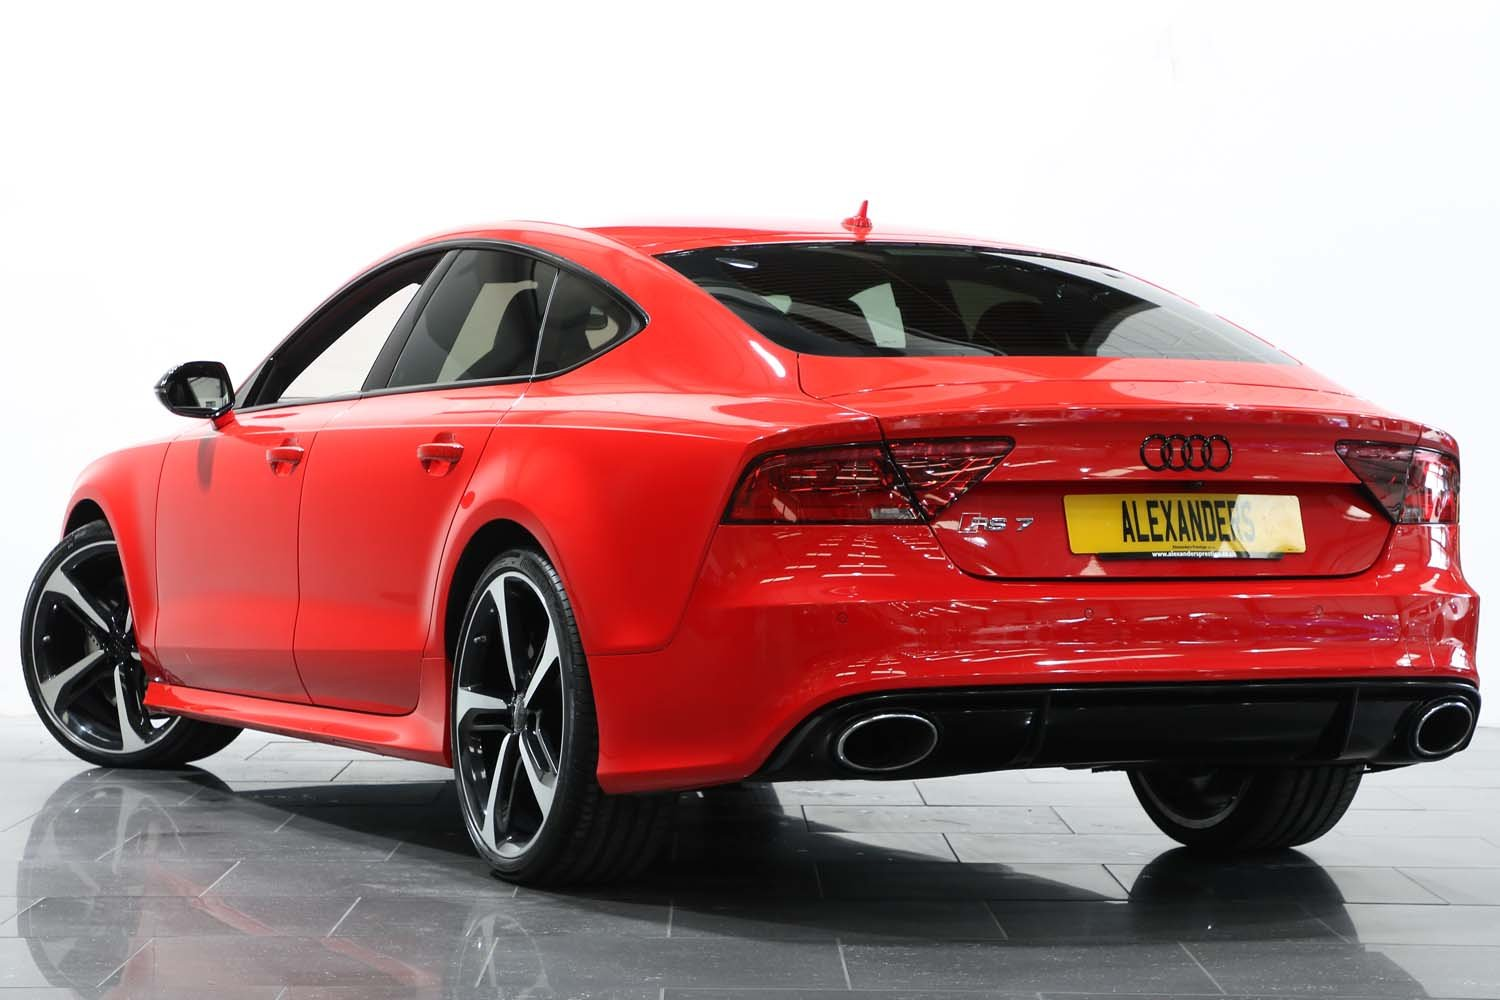 2014 AUDI RS7 SPORTBACK 4.0 TFSI V8 QUATTRO S TRONIC For Sale (picture 3 of 6)